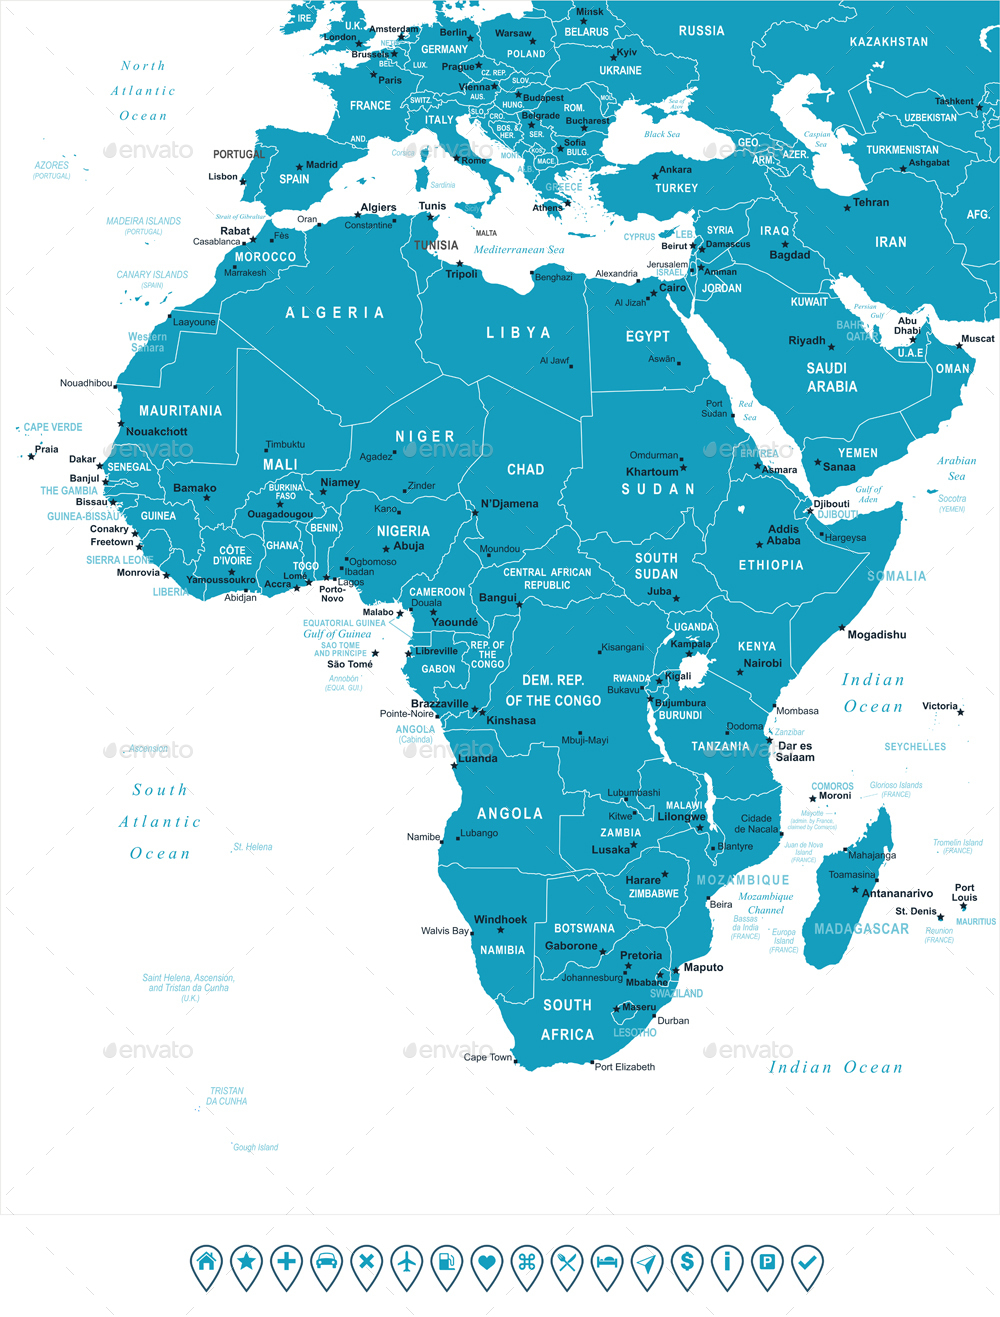 map of africa with labels Africa Map And Navigation Labels By Dikobrazik Graphicriver map of africa with labels